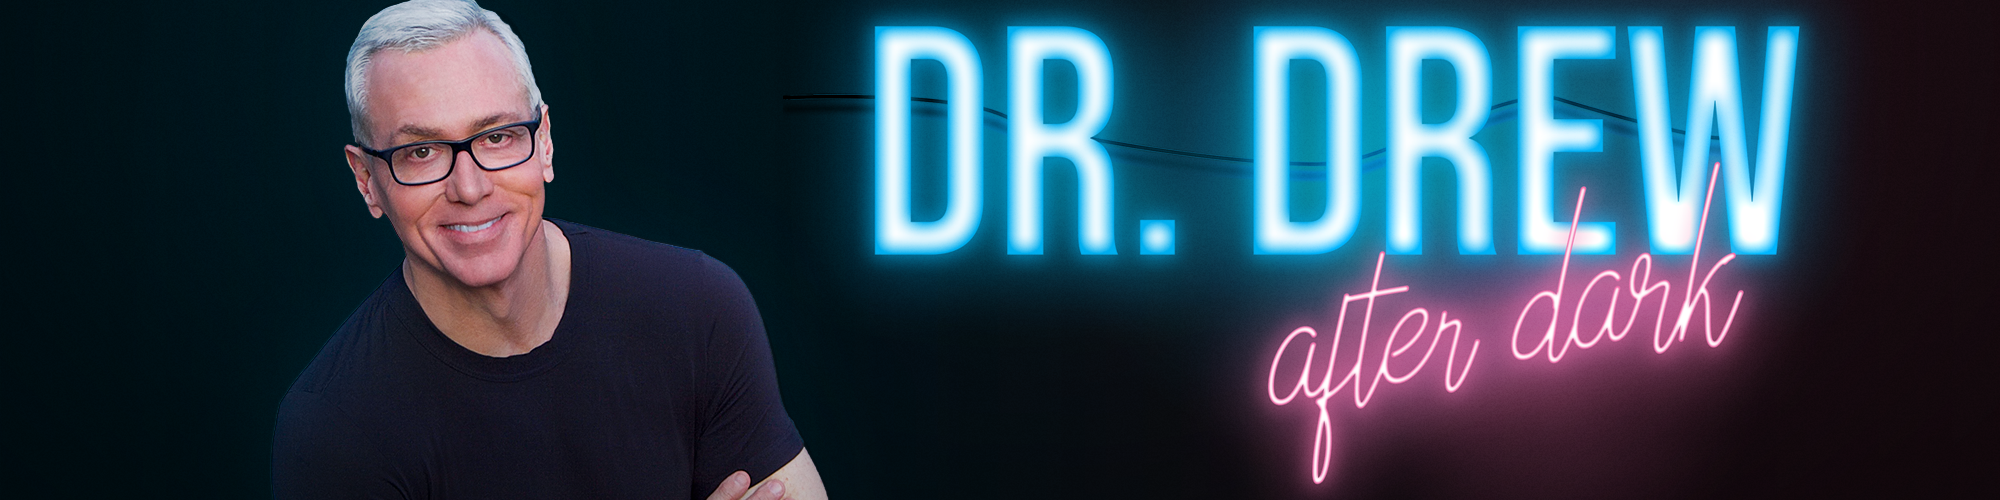 YMH Page Headers - Dr. Drew